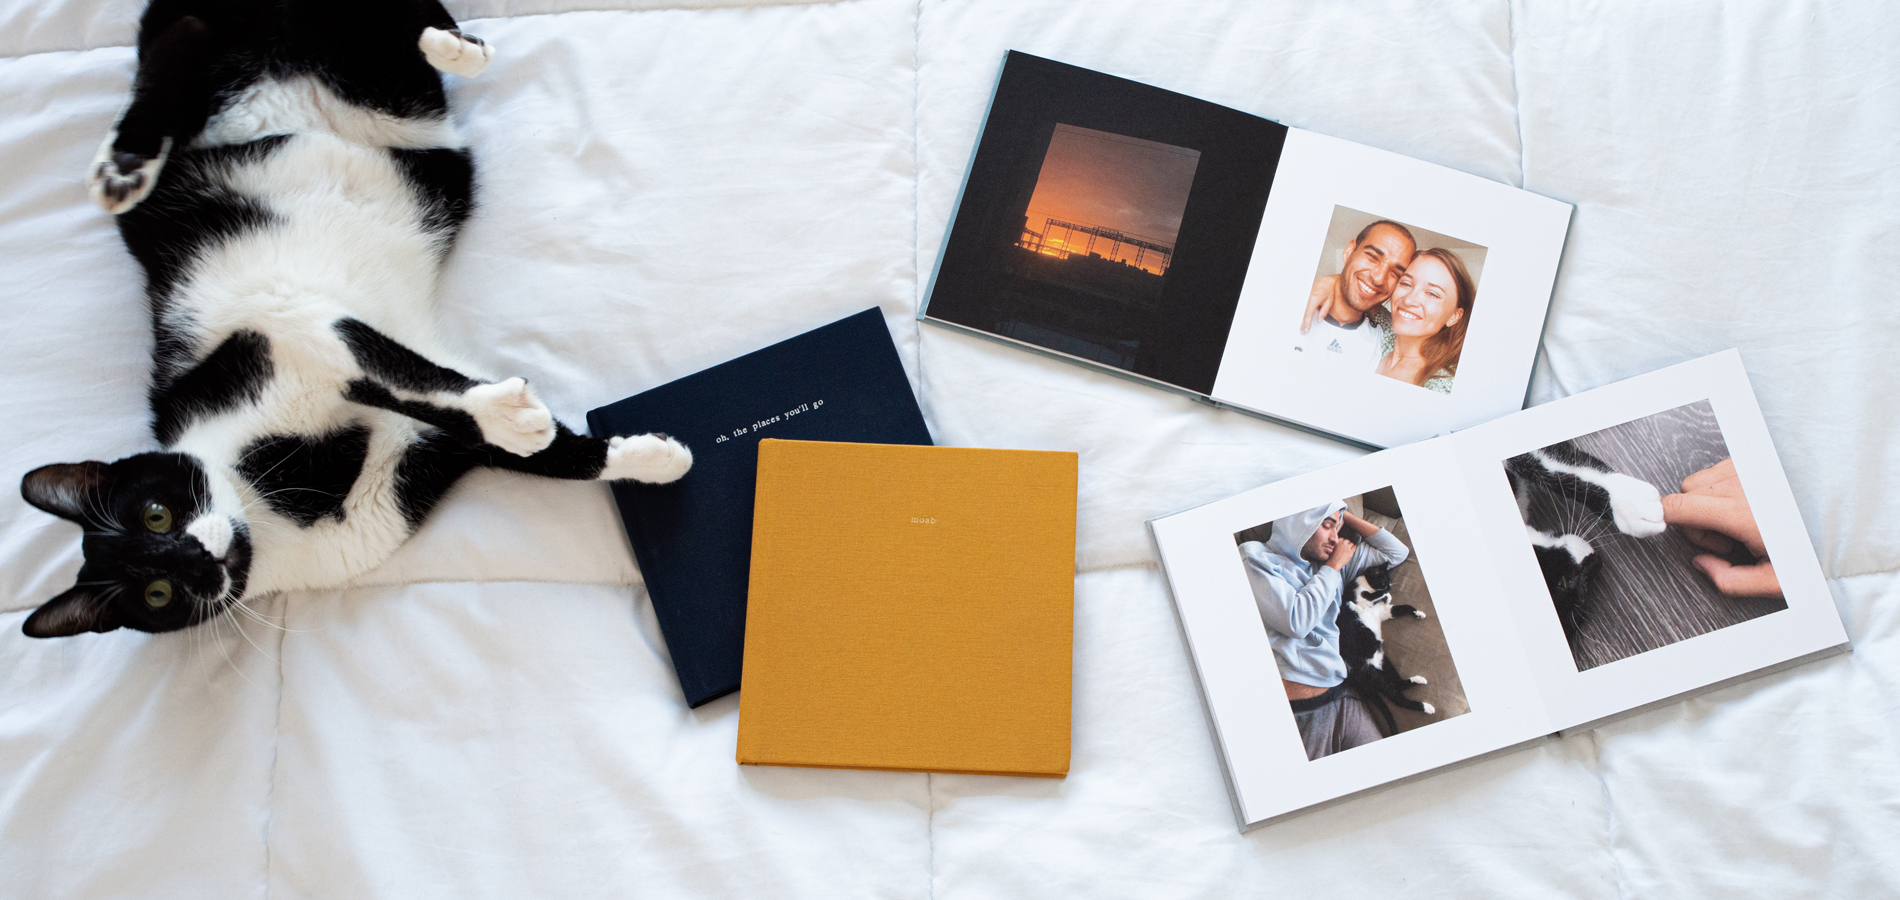 Two Artifact Uprising Everyday Photo Books opened up on bed next to cat and two closed albums